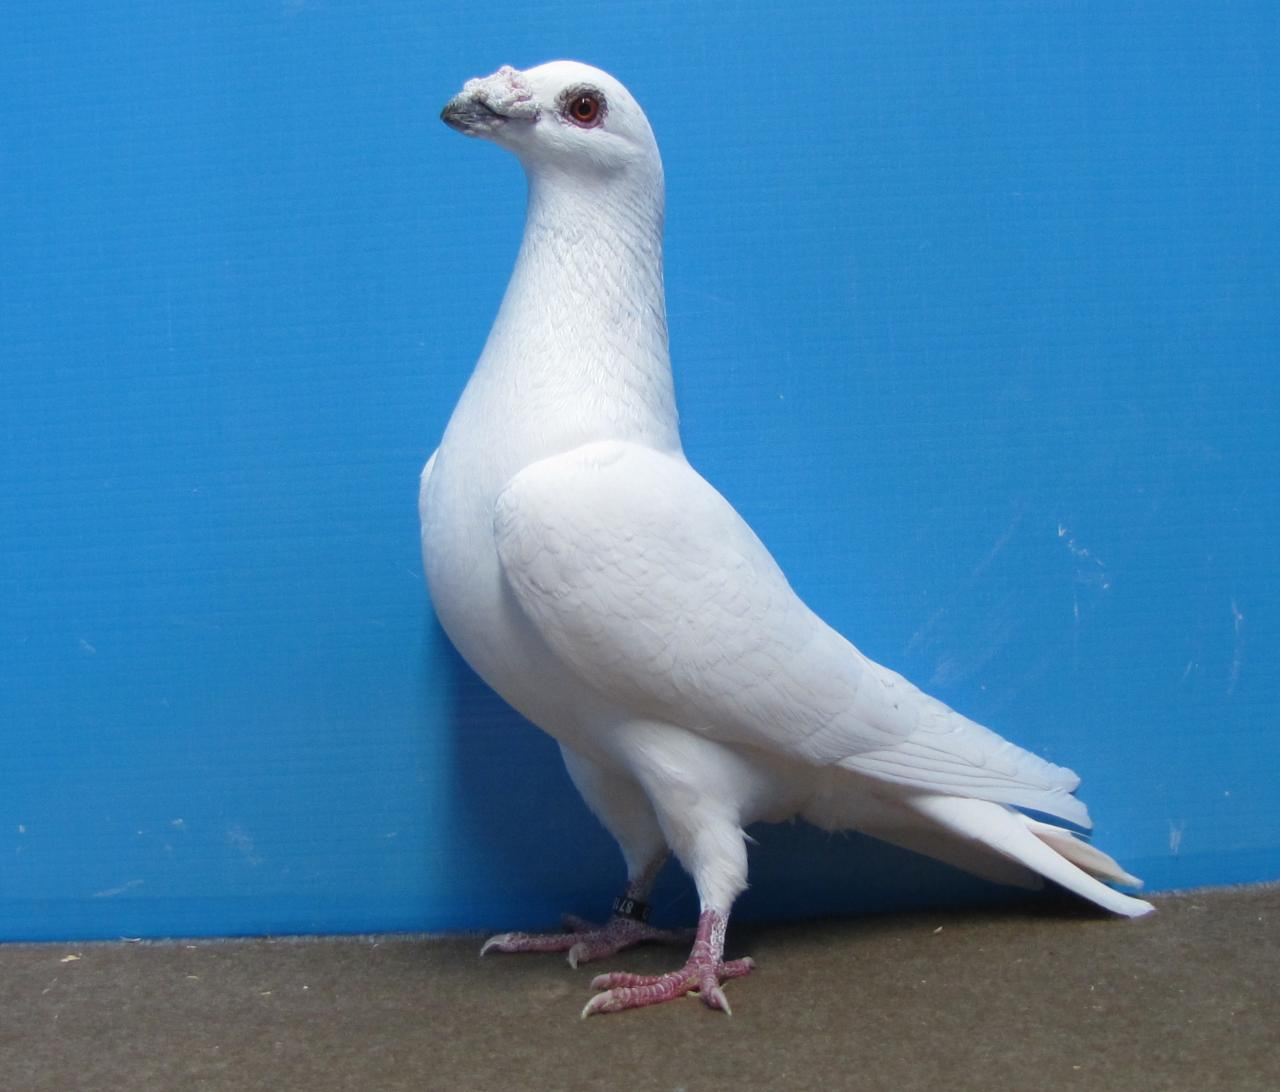 birdtrader - white dragoon - wattle pigeons - english pigeons